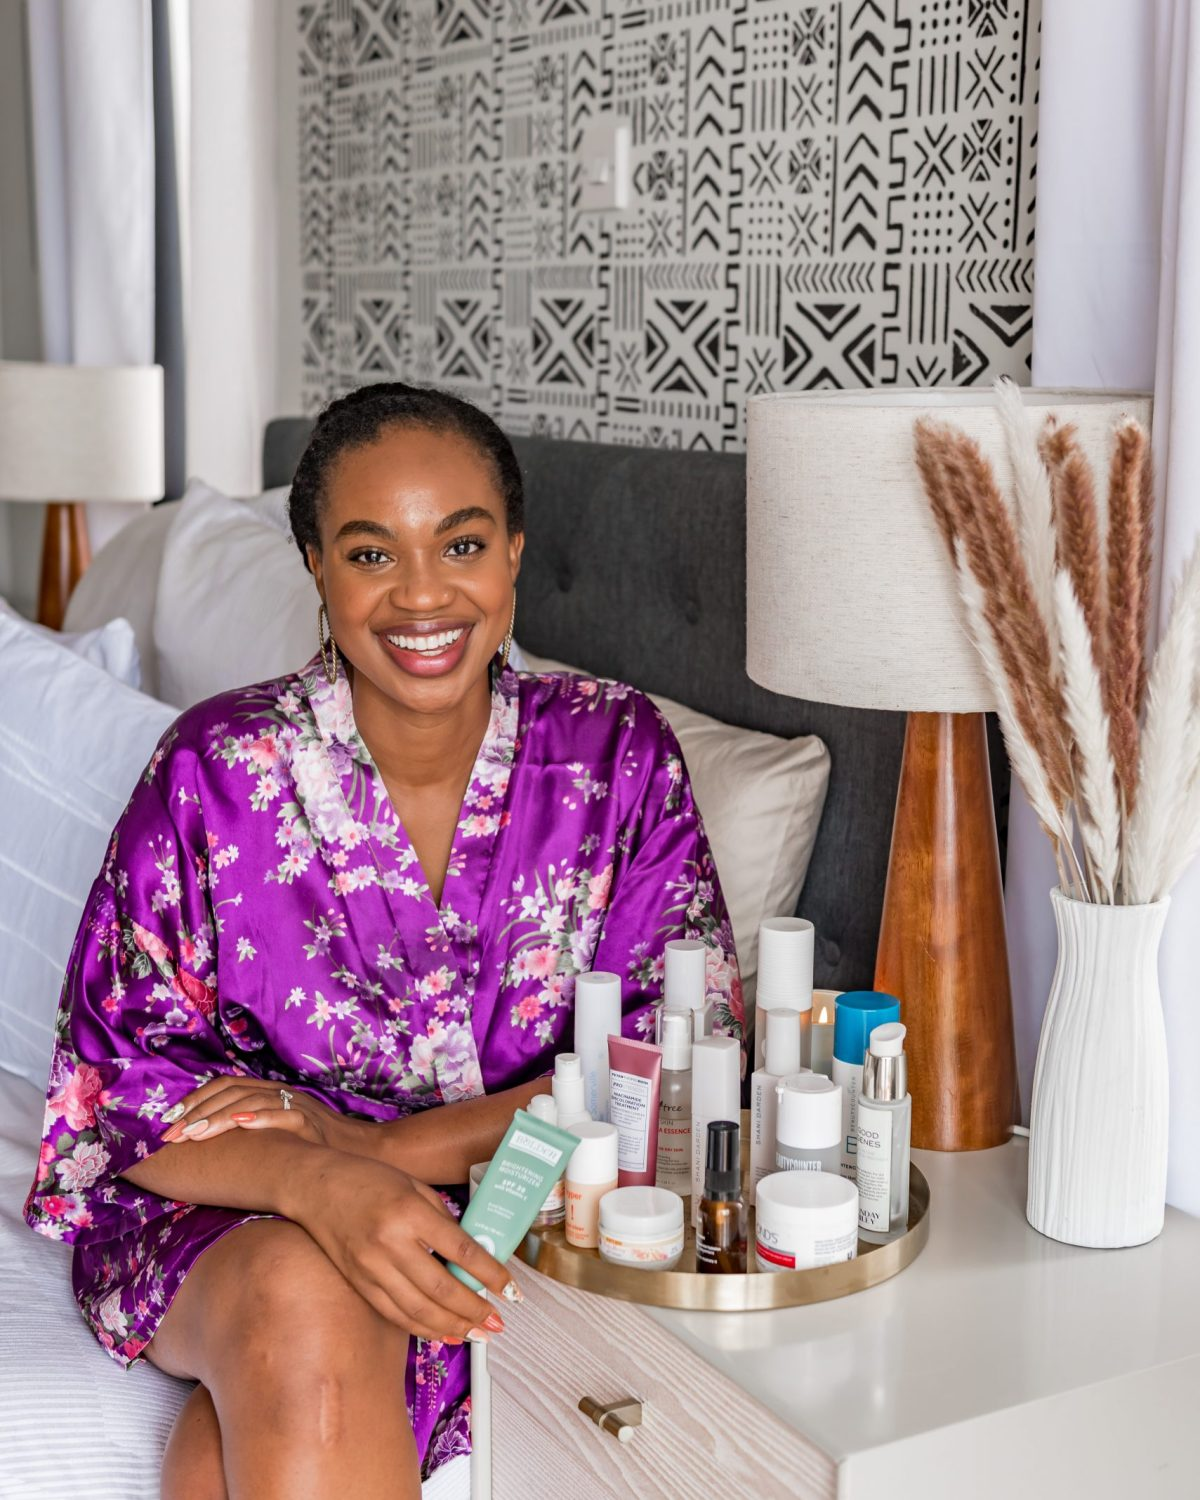 Ijeoma Kola in purple silk robe sitting on bed with skincare products on tray